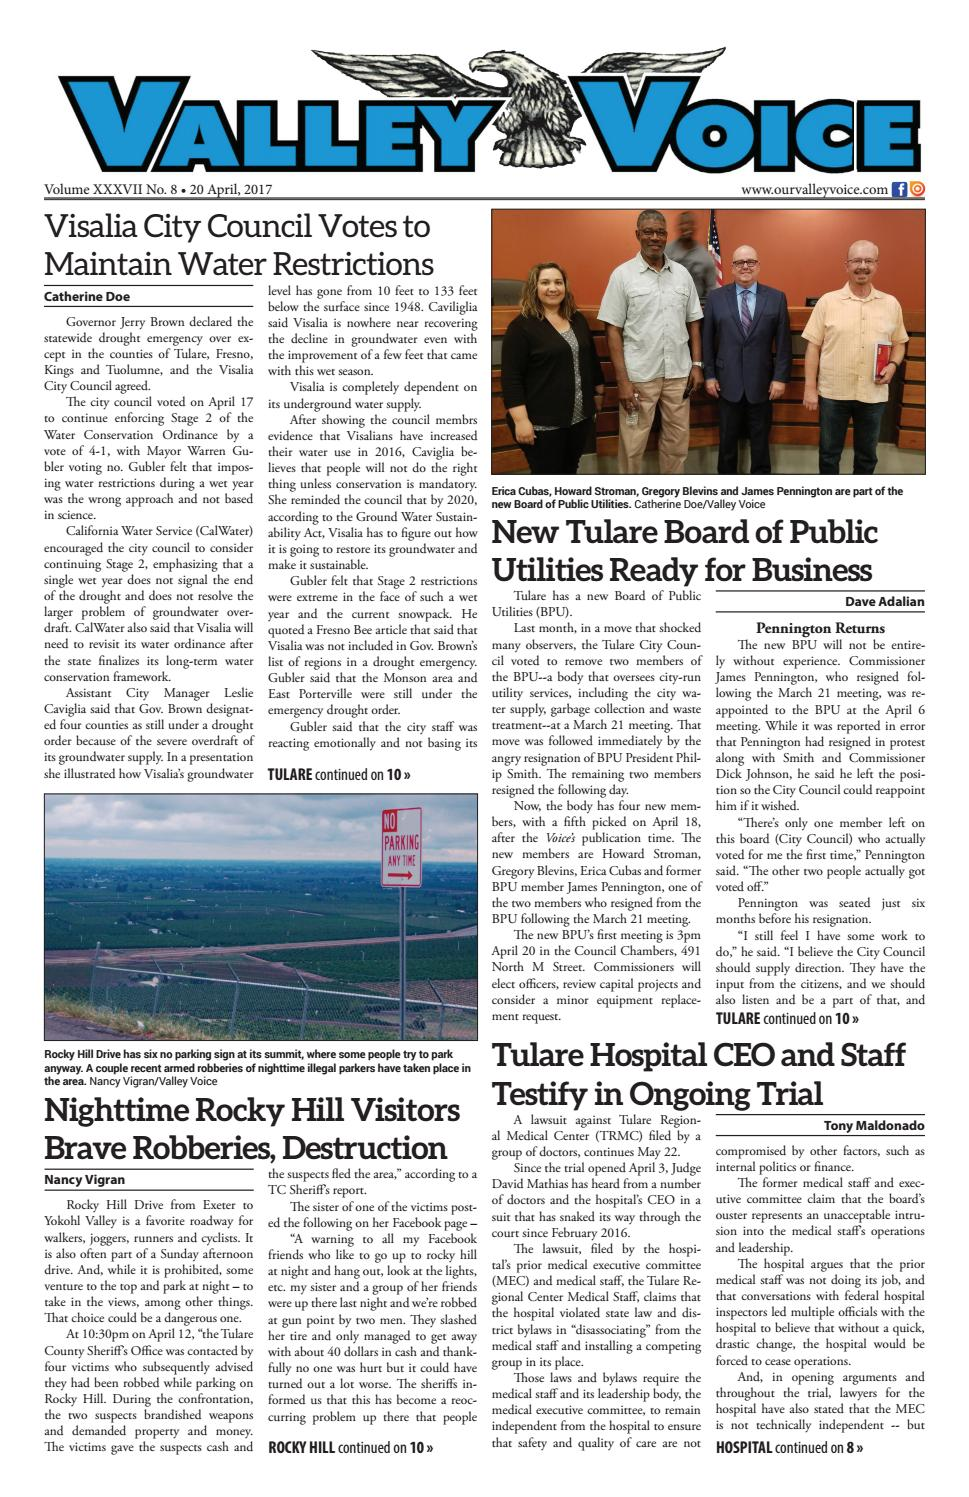 Valley Voice Issue 91 (20 April, 2017)